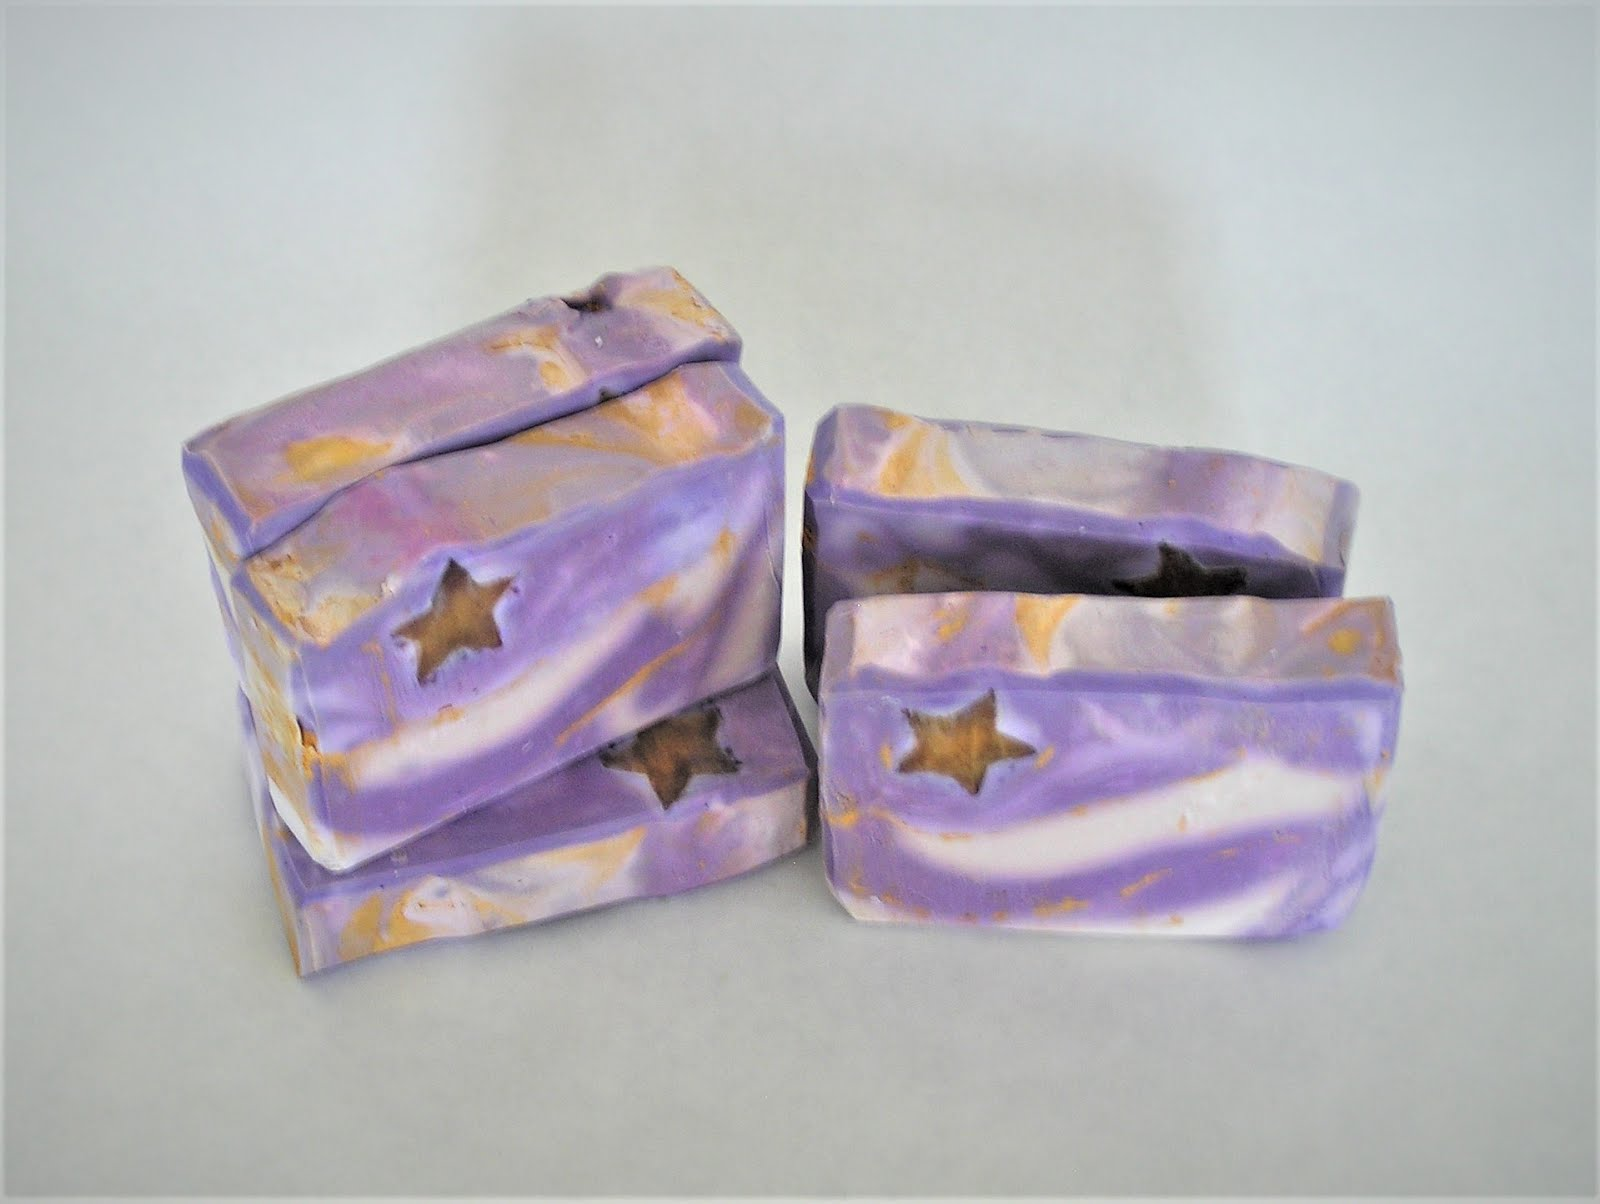 Shop for Pottery or Handmade Soap!